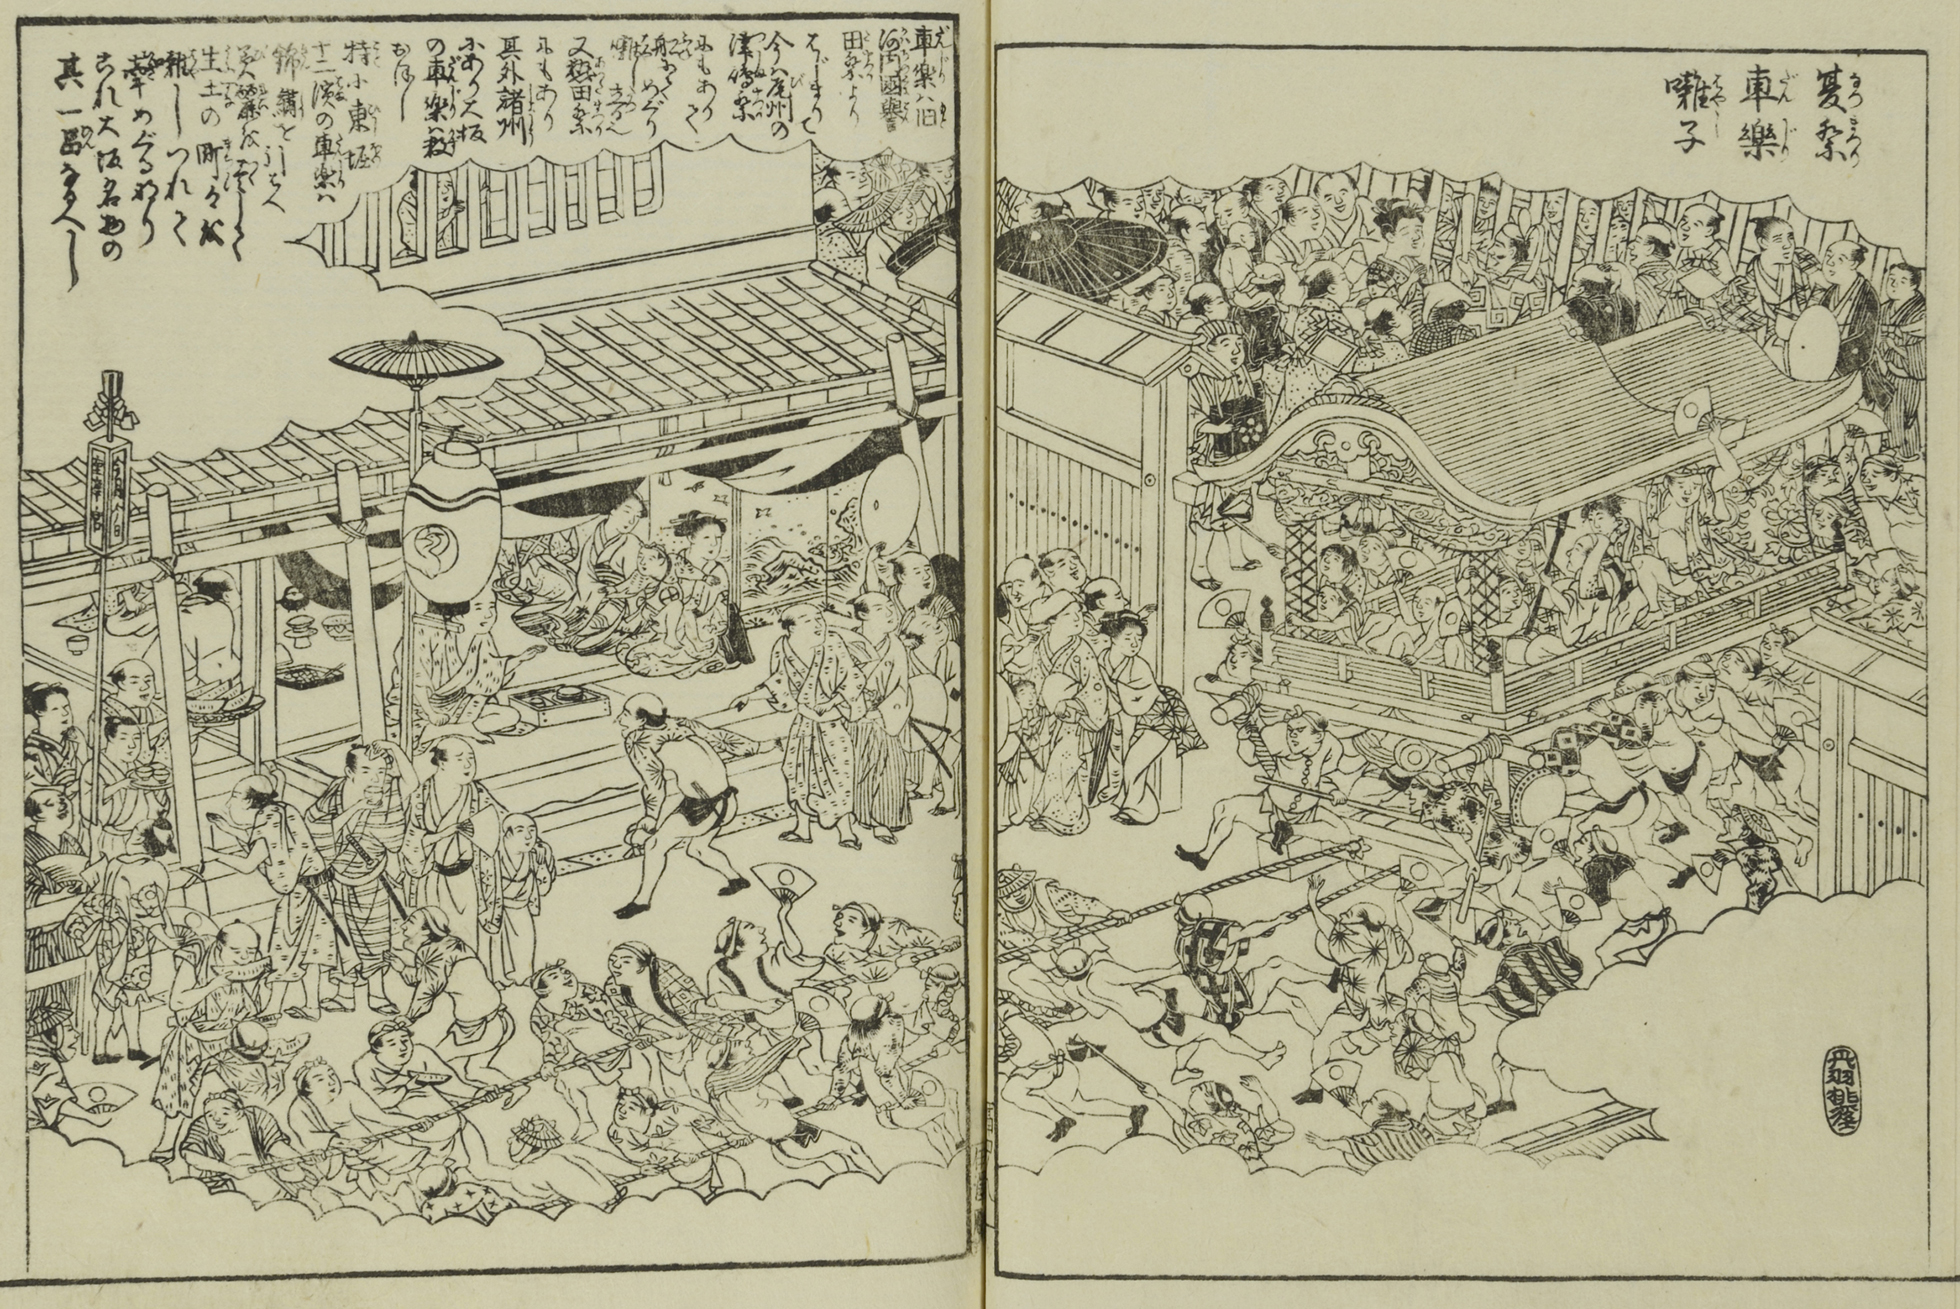 A black and white woodblock print showing a religious procession through the city.